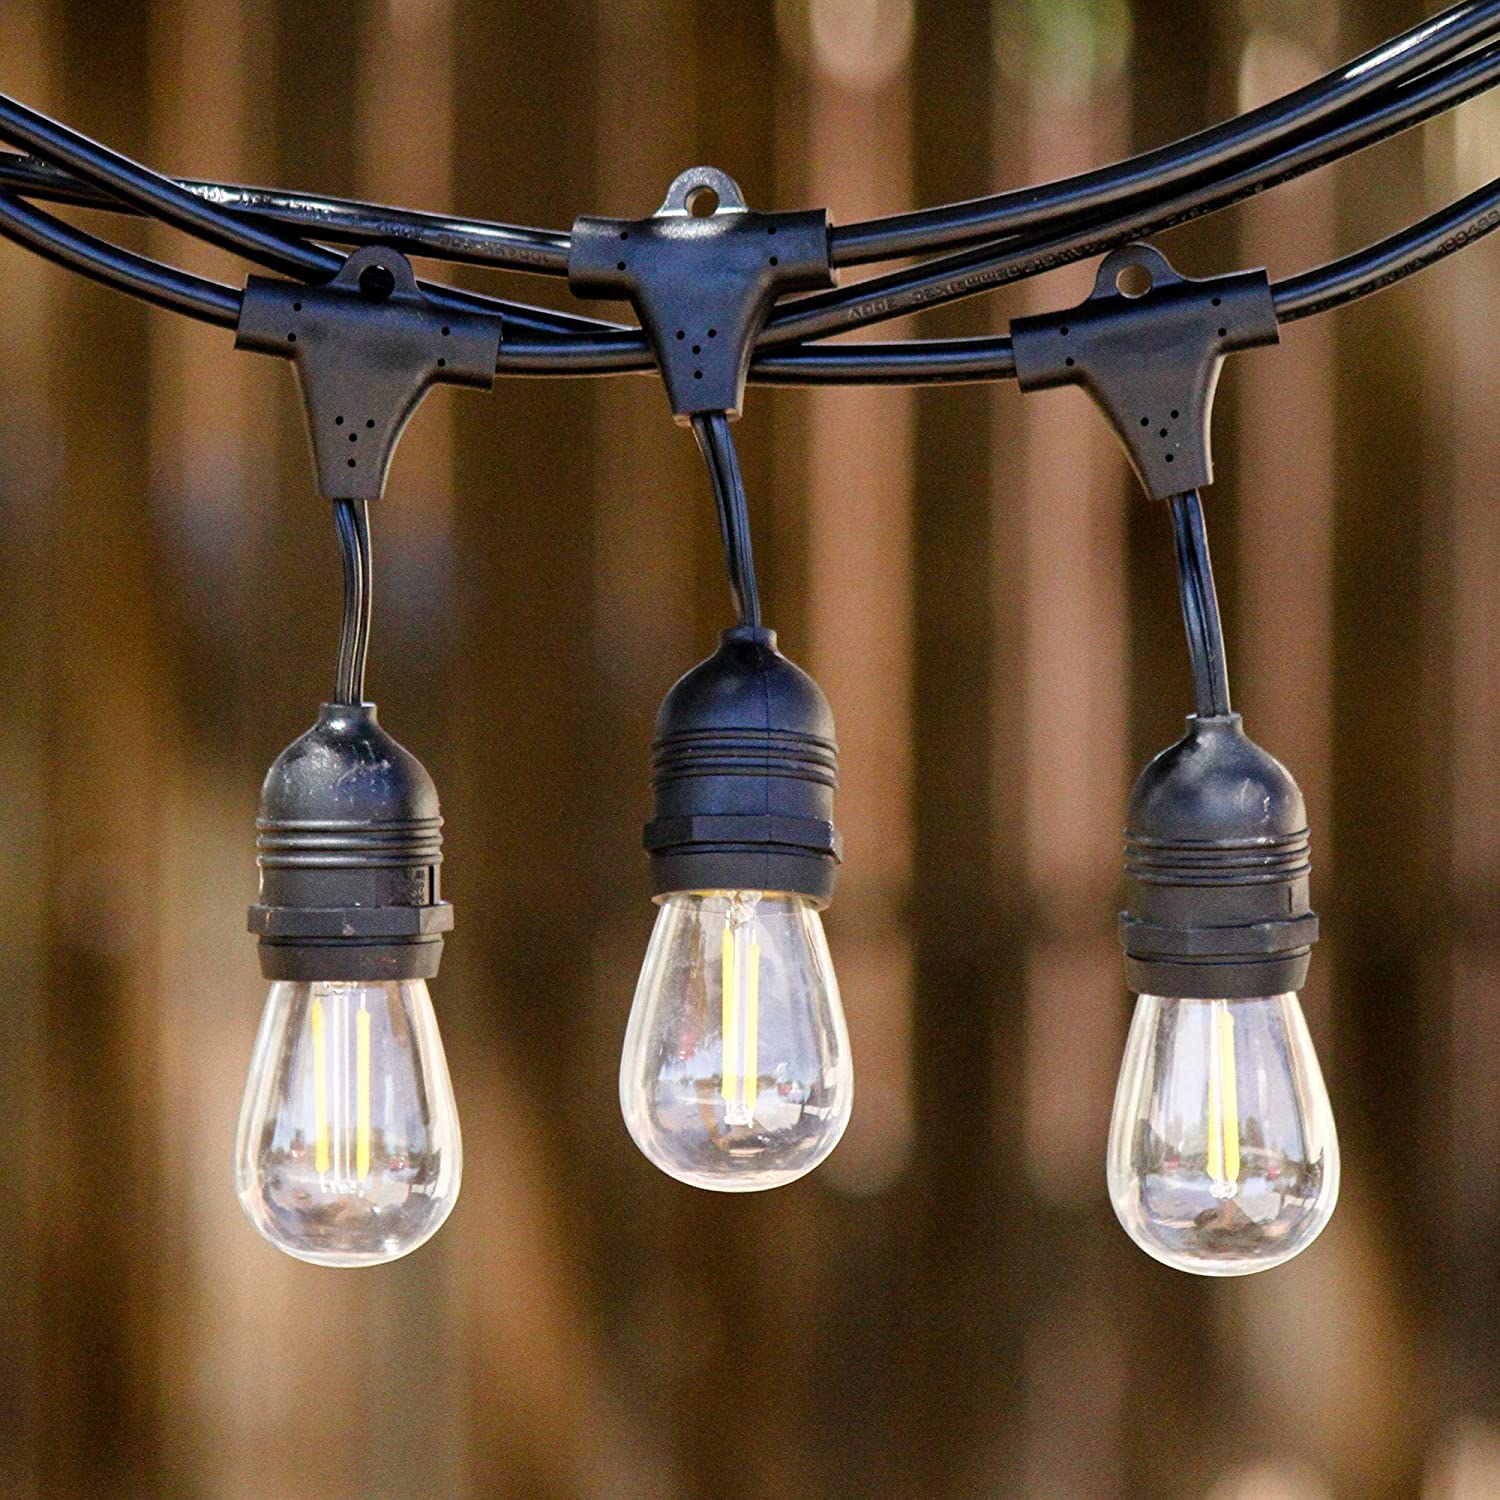 Led String Lights For Patio Amazon low e led outdoor string lights weatherproof amazon low e led outdoor string lights weatherproof commercial grade 15 hanging sockets 18 2 watt dimmable led bulbs 3 extra 10 ft ext workwithnaturefo